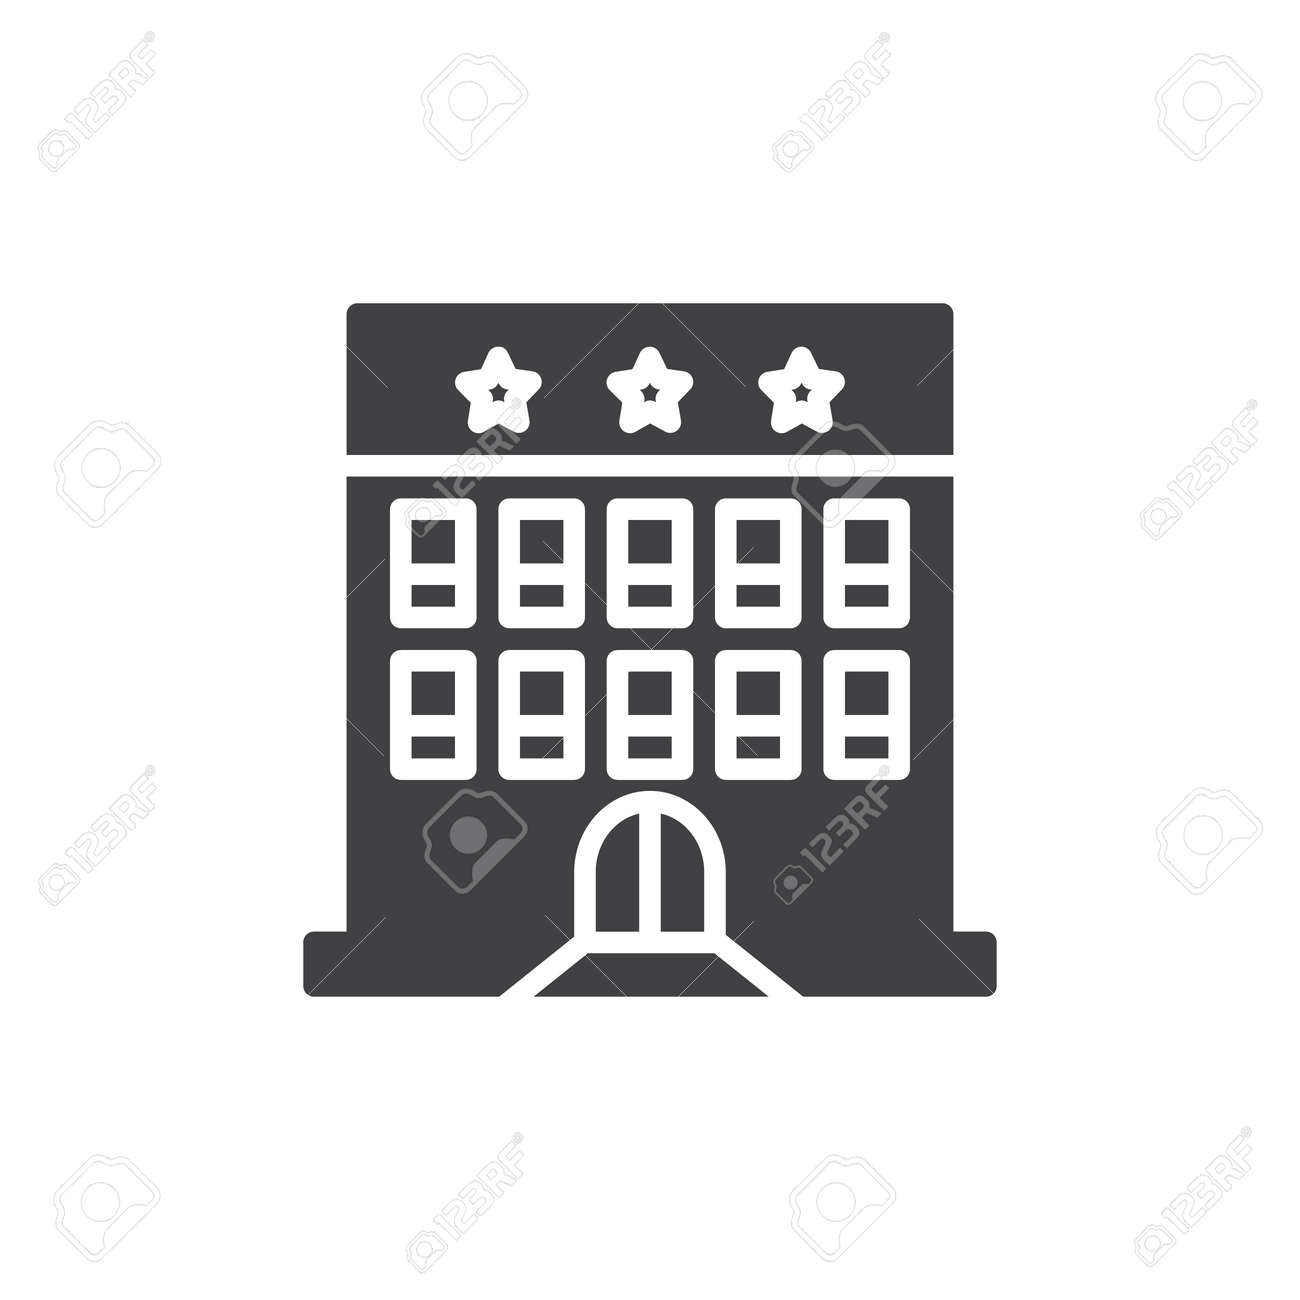 Hotel building icon vector filled flat sign solid pictogram hotel building icon vector filled flat sign solid pictogram isolated on white symbol biocorpaavc